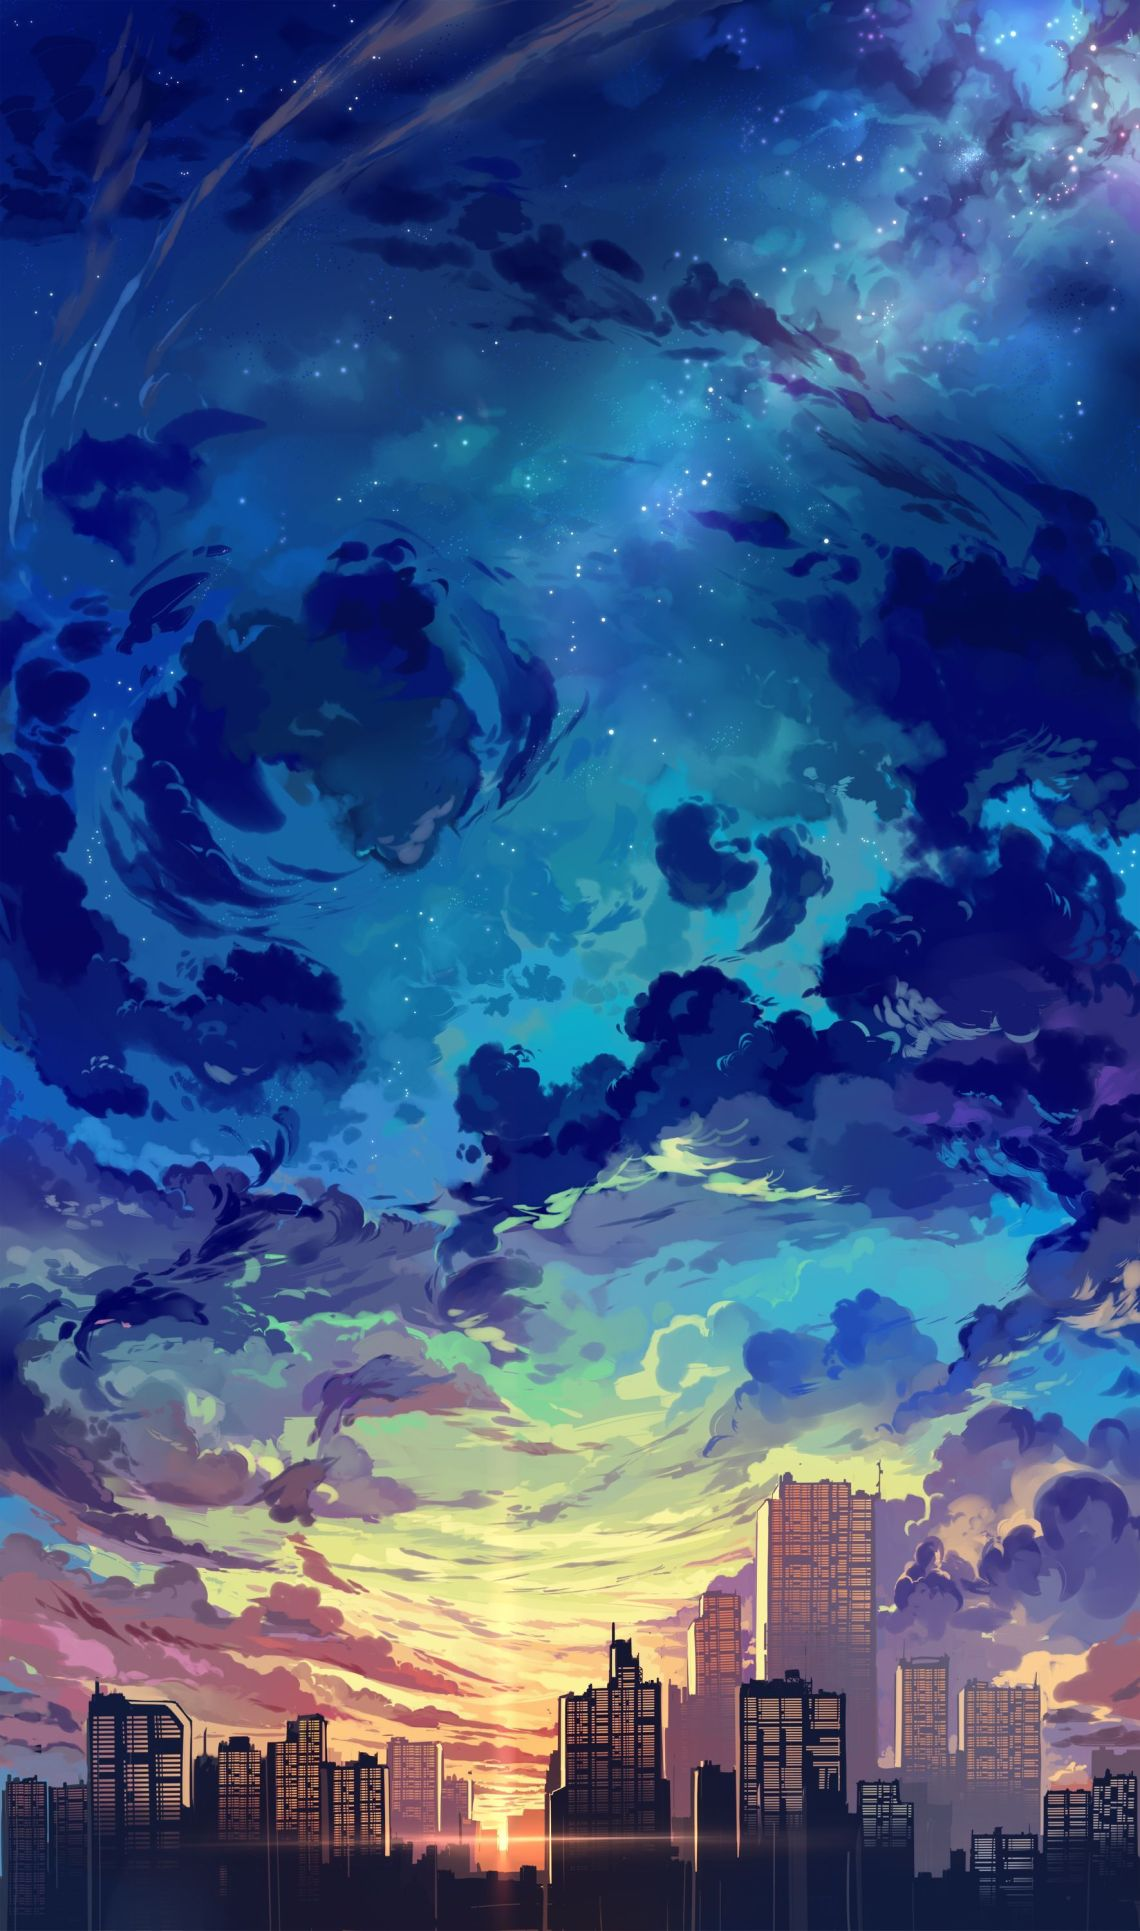 Anime Aesthetic Android Wallpapers Wallpaper Cave